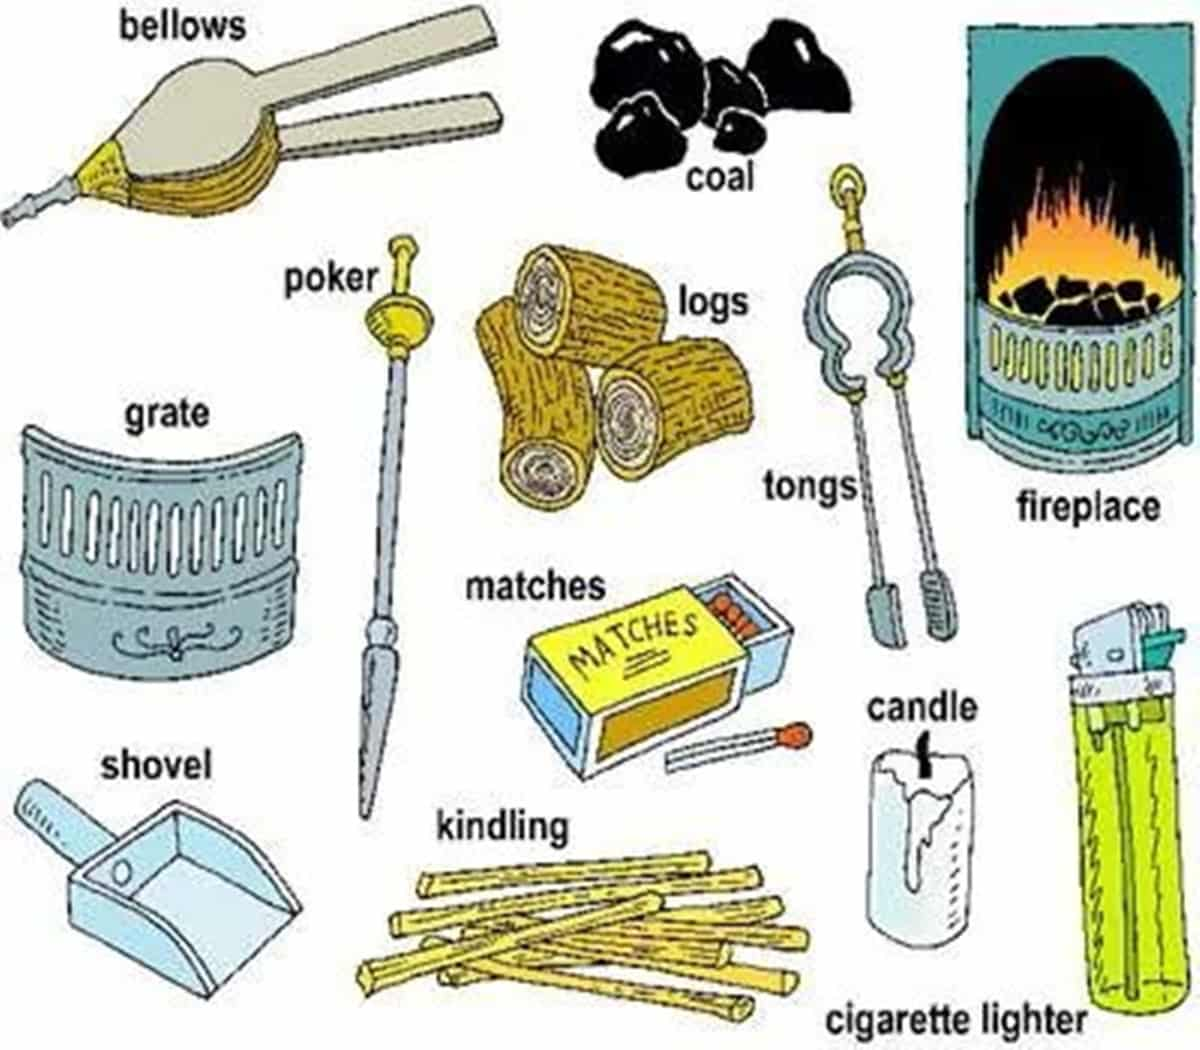 Tools, Equipment, Devices and Home Appliances Vocabulary: 300+ Items Illustrated 4